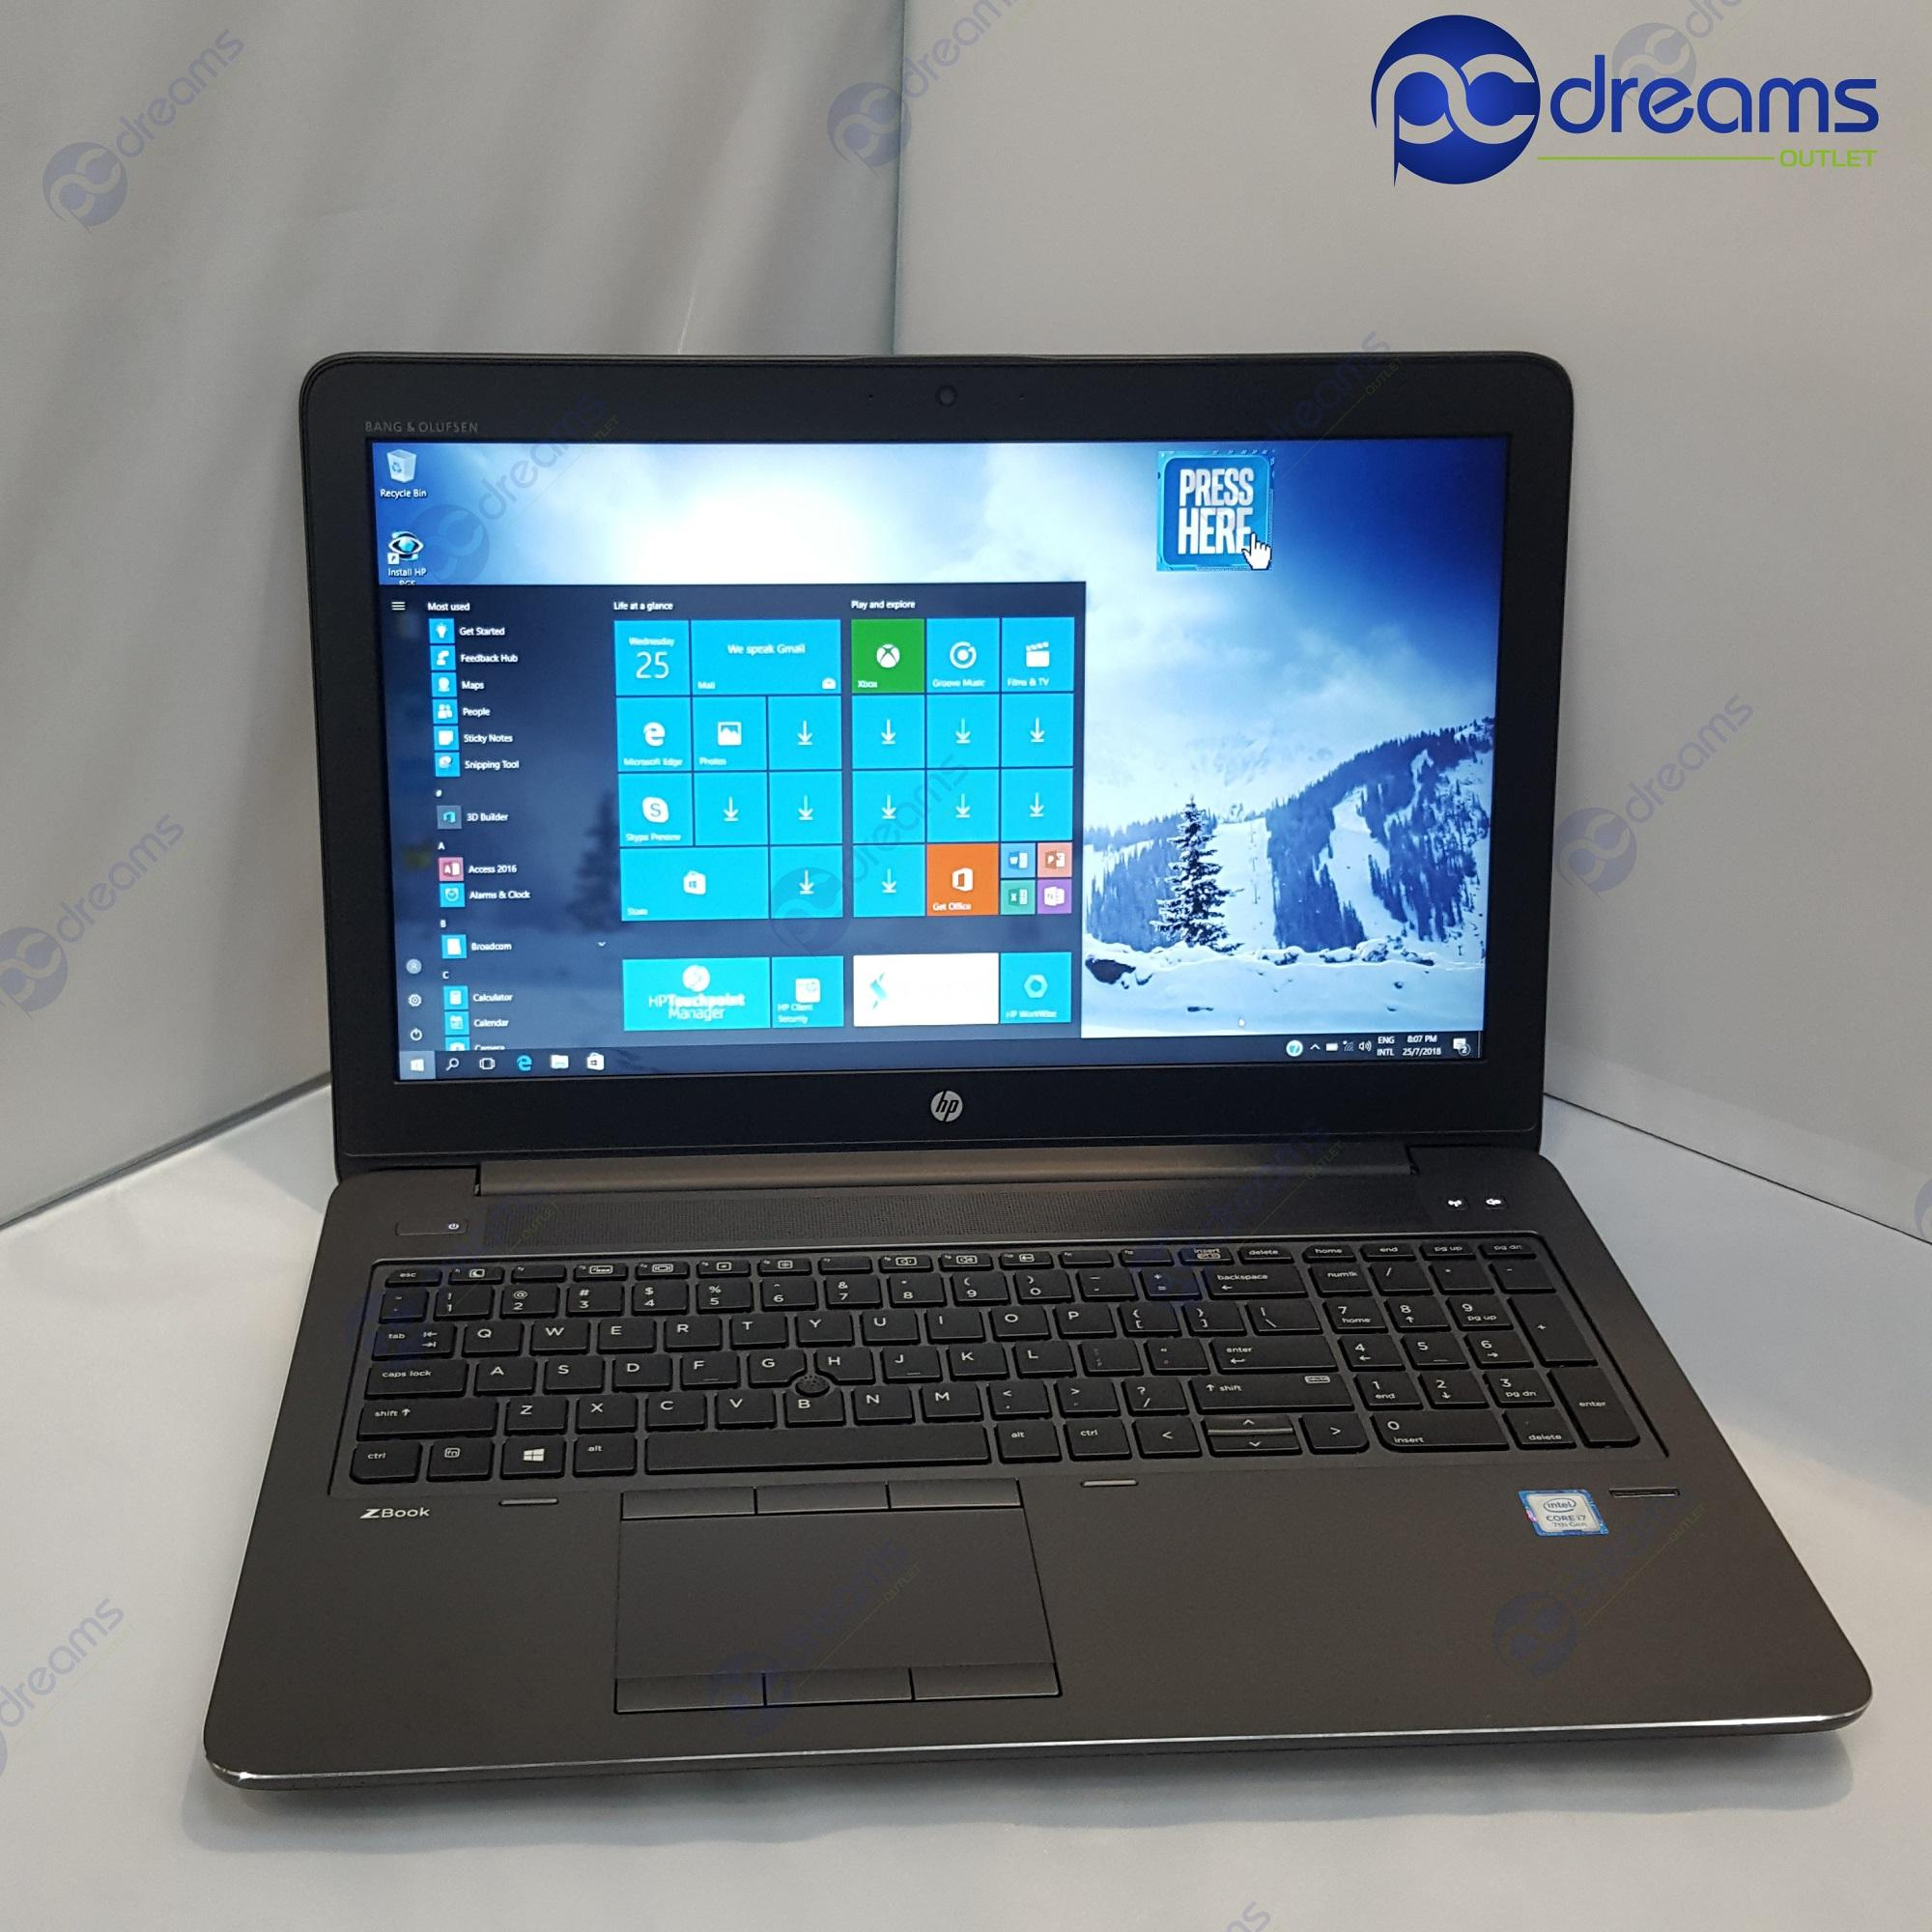 NATIONAL DAY PROMOTION! HP ZBOOK 15 G3 (M9R63AV) i7-6820HQ/8GB/1TB HDD [Premium Refreshed]